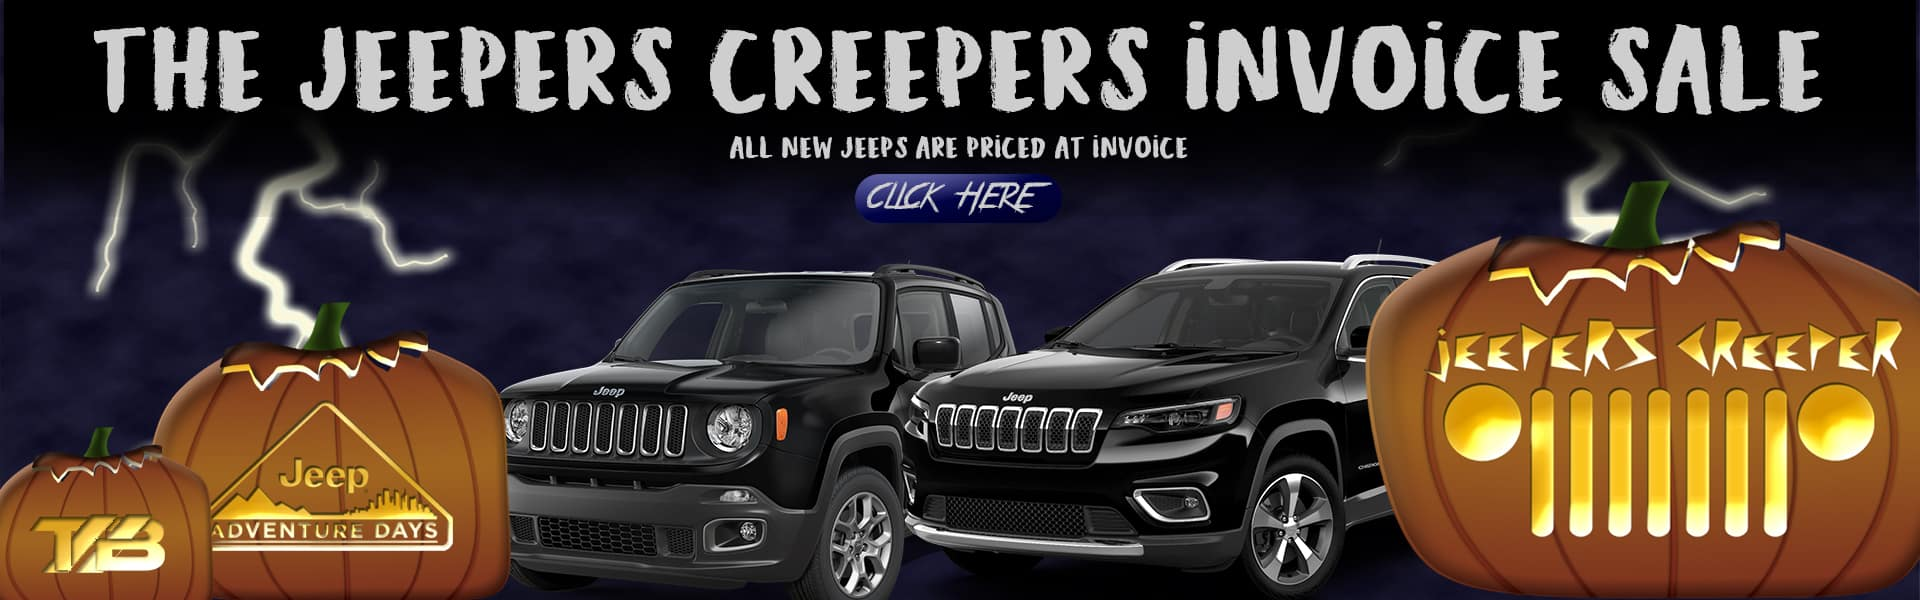 JeepersCreepers | Tate Branch Artesia